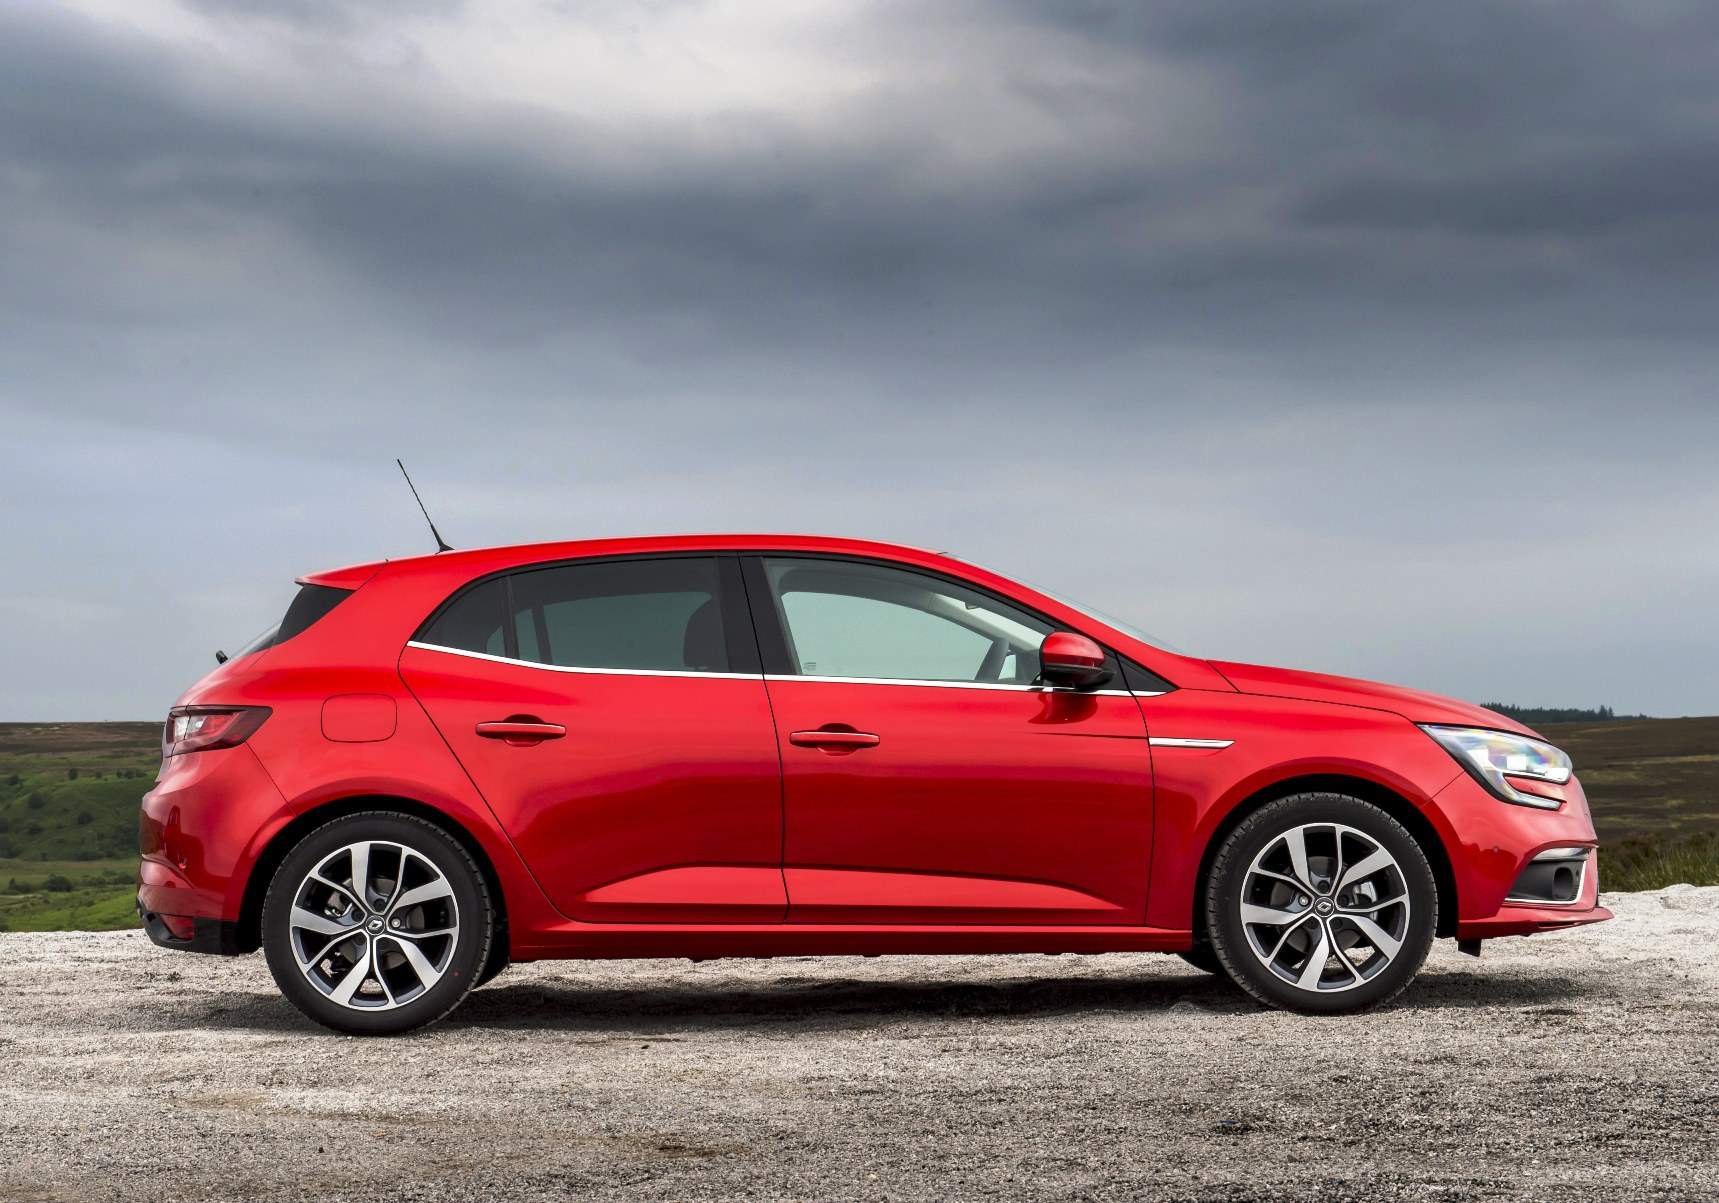 new-renault-megane-hatchback-side-view